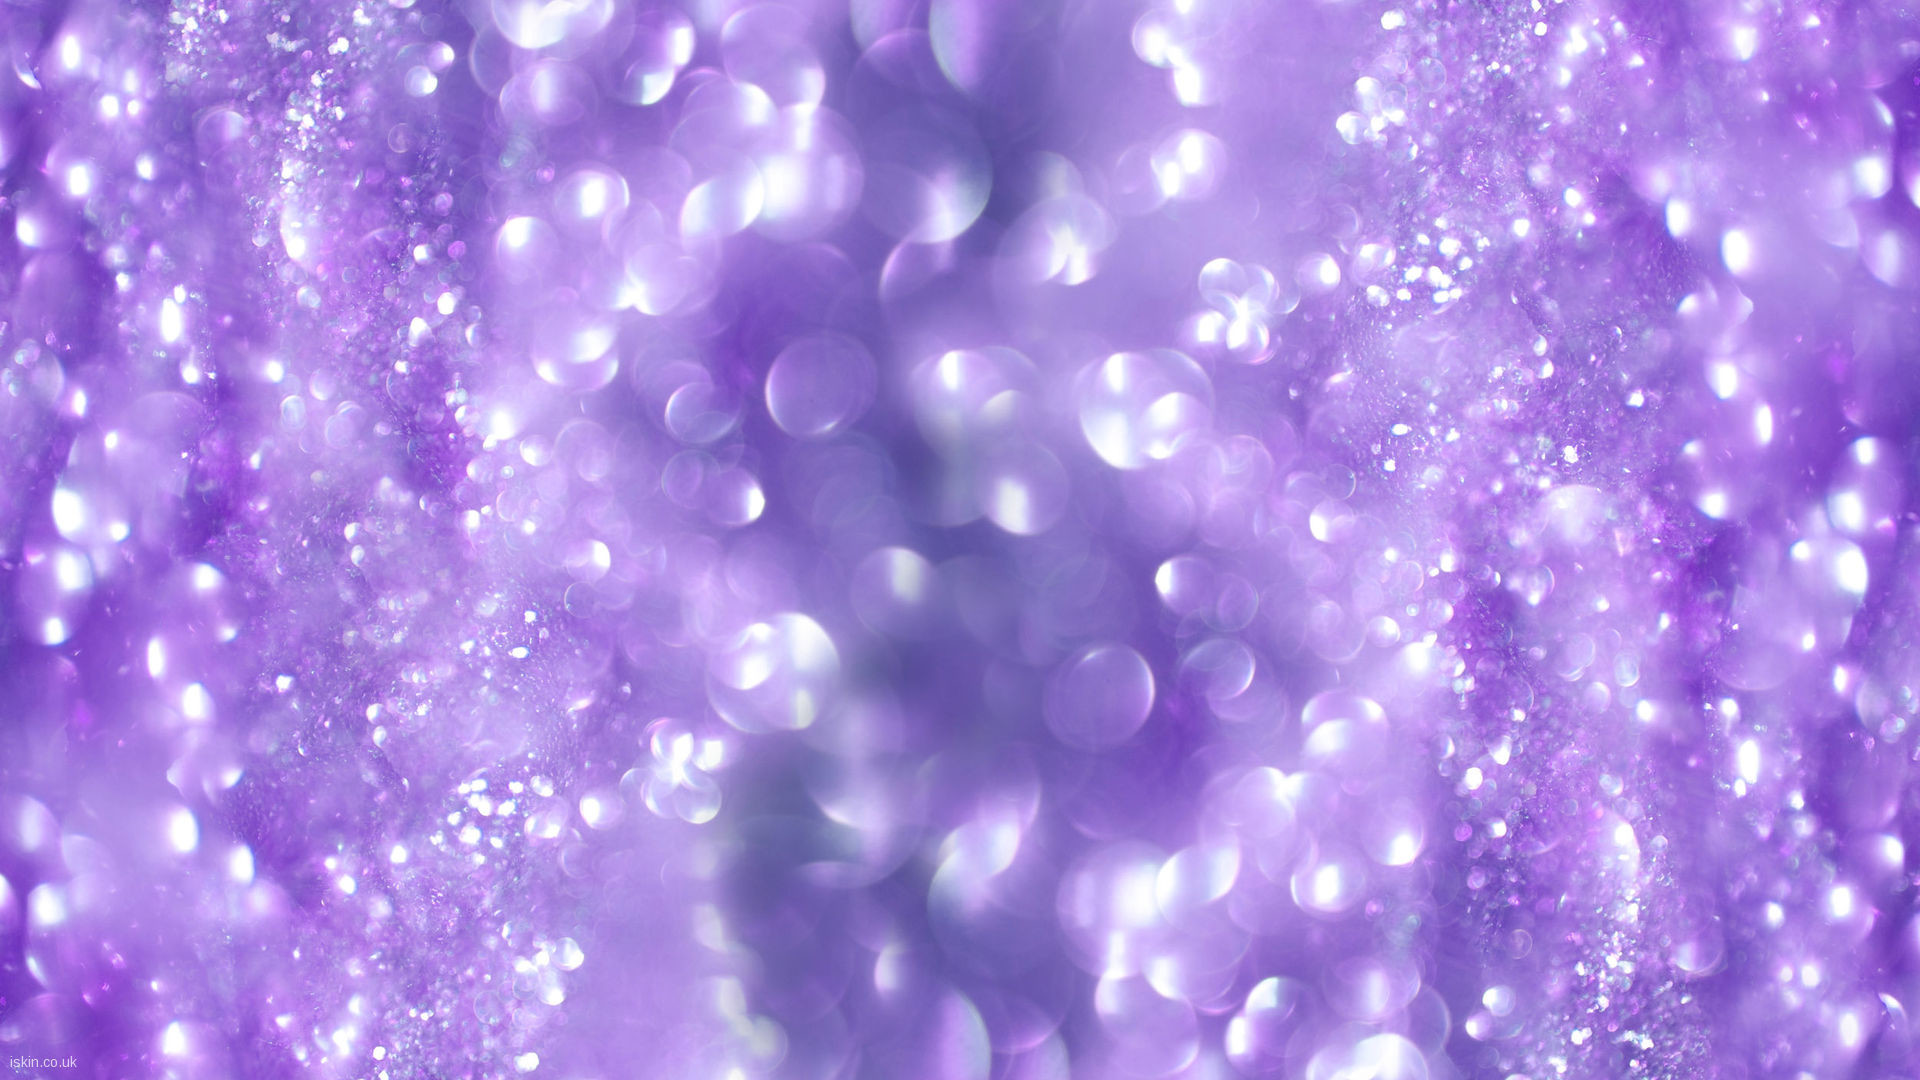 1920x1080 purple glitter wallpaper #245689